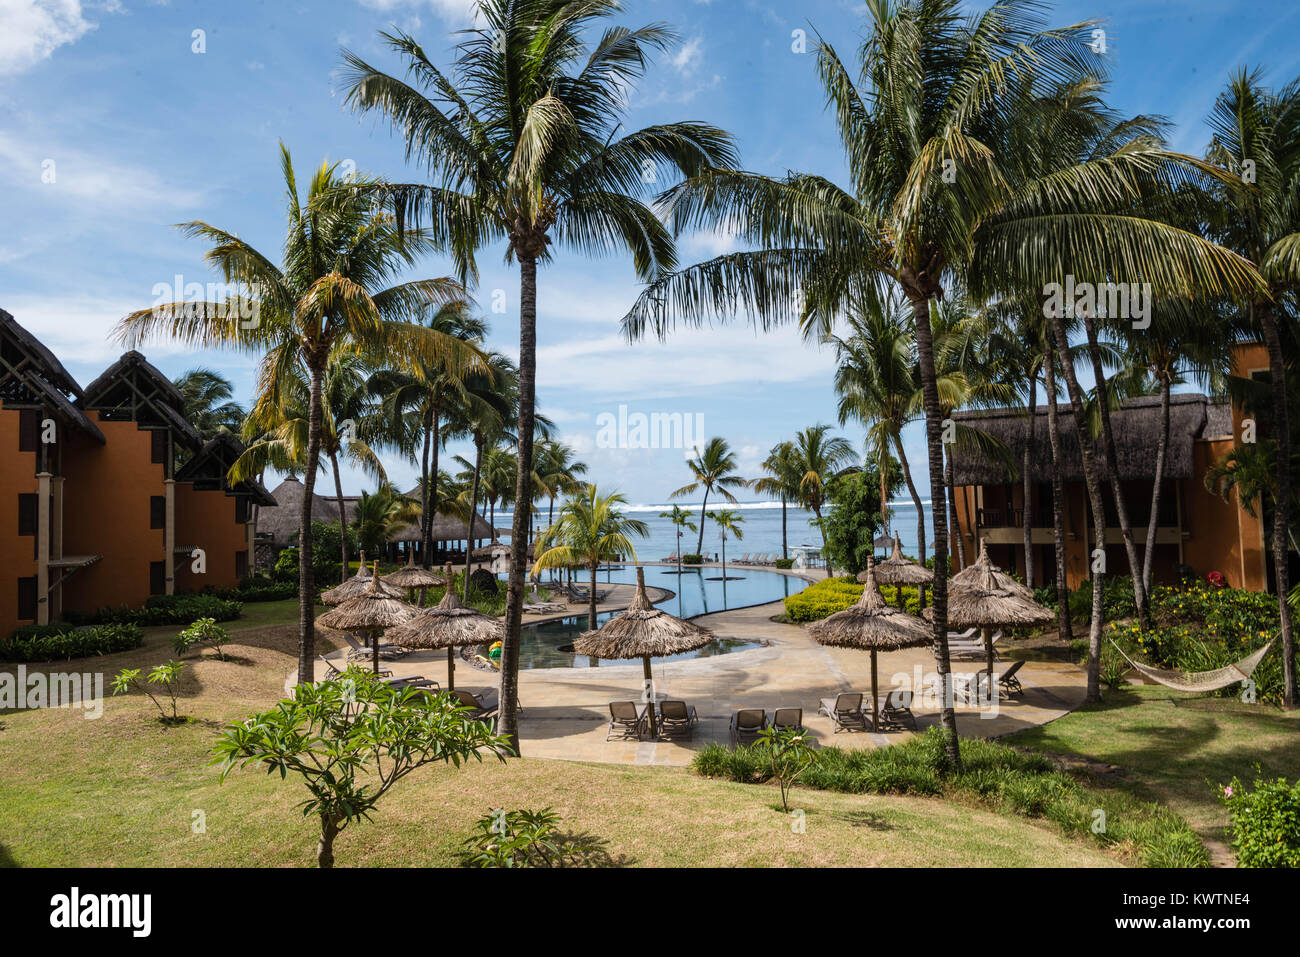 Mauritian hotel resort, Heritage Awali in the south of Mauritius, Bel Ombre - Stock Image